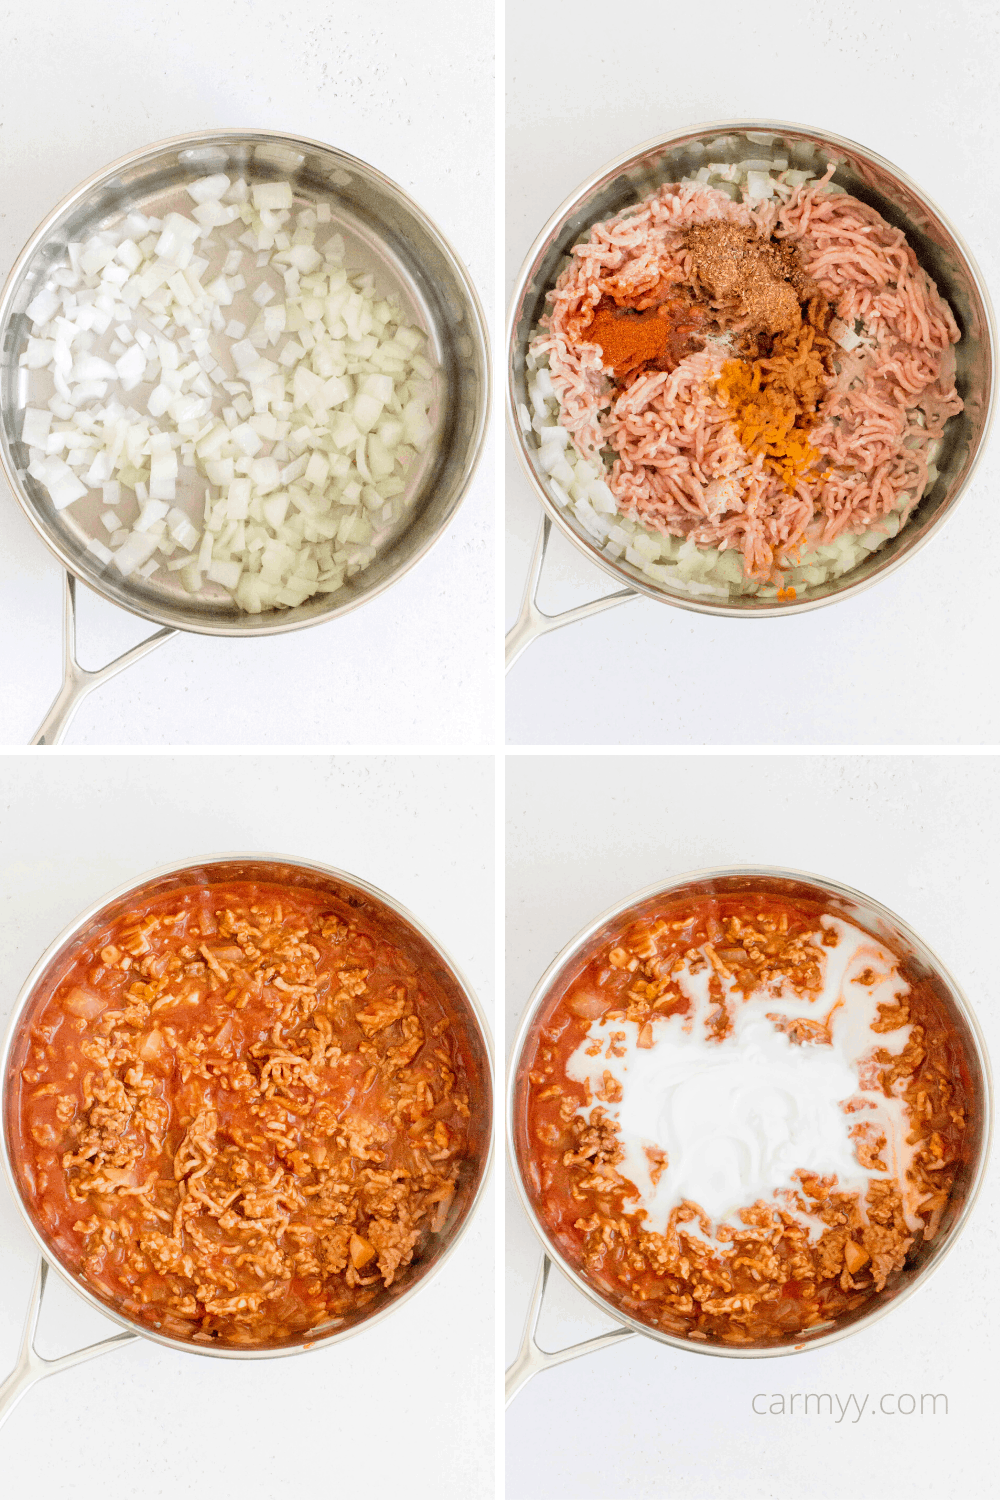 step by step instructions photos. sauté pan with onions, then with ground chicken and spices, then with passata sauce, and then coconut milk